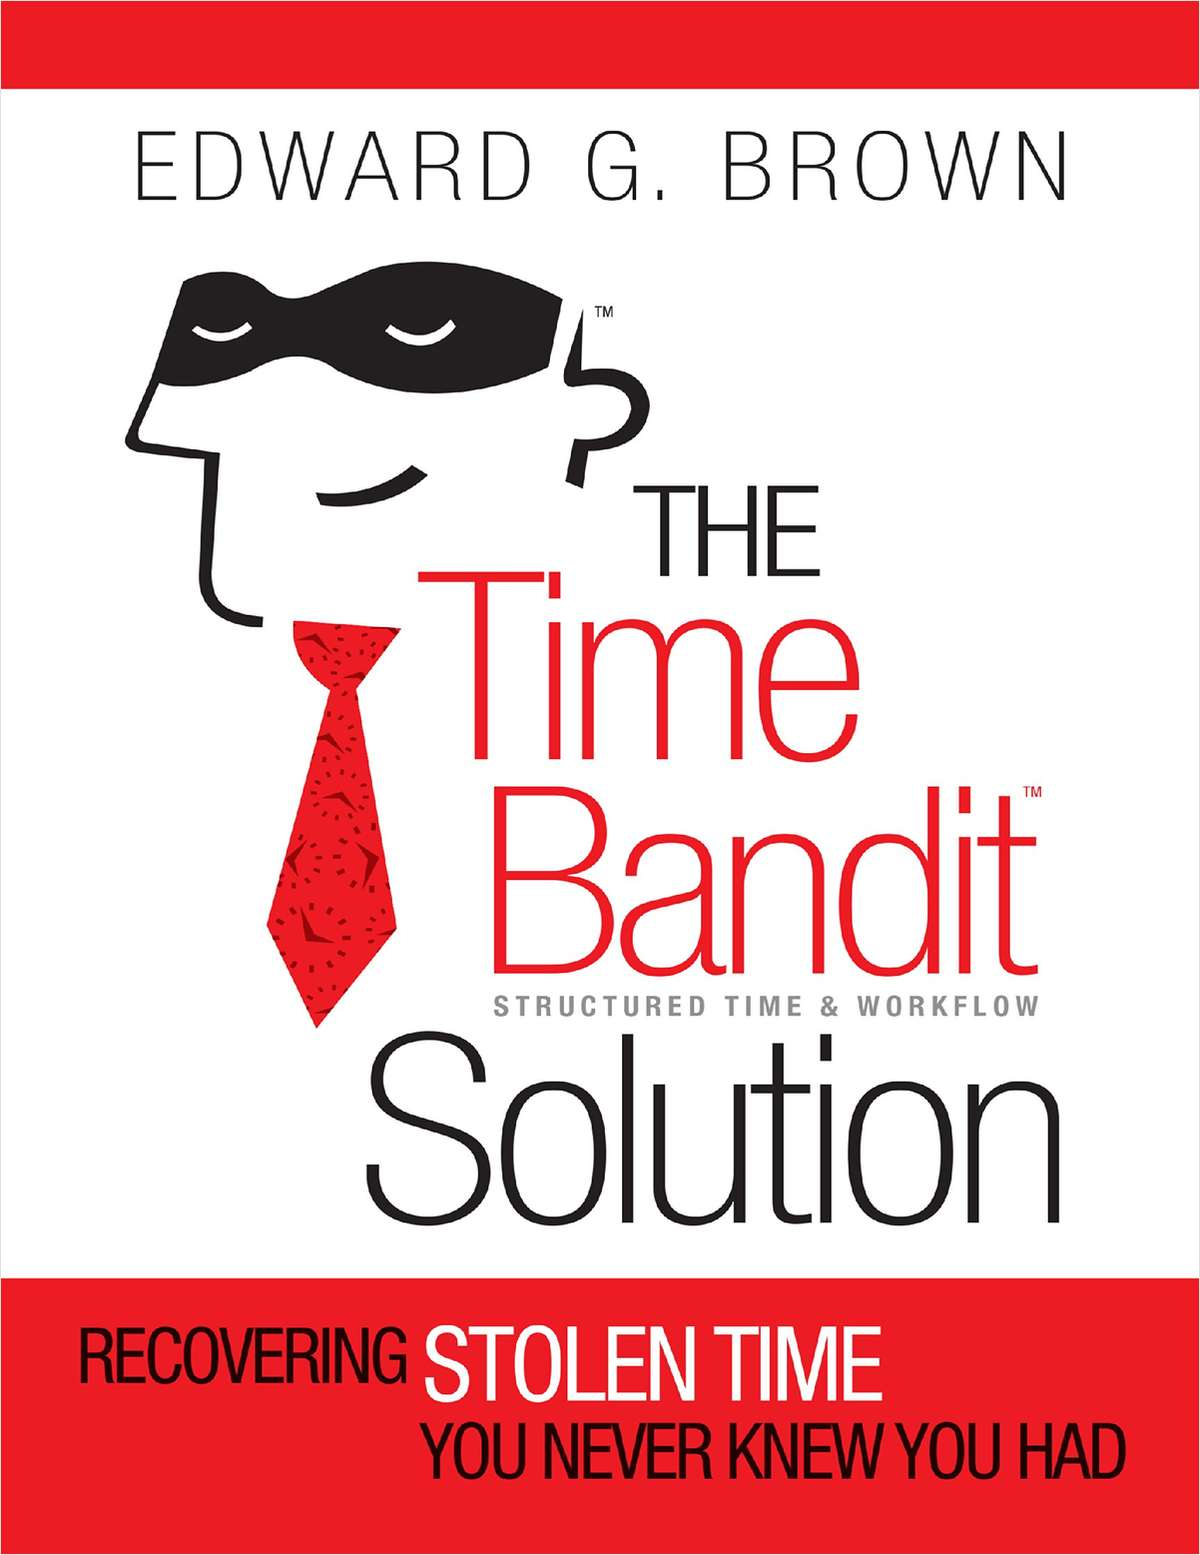 The Time Bandit Solution